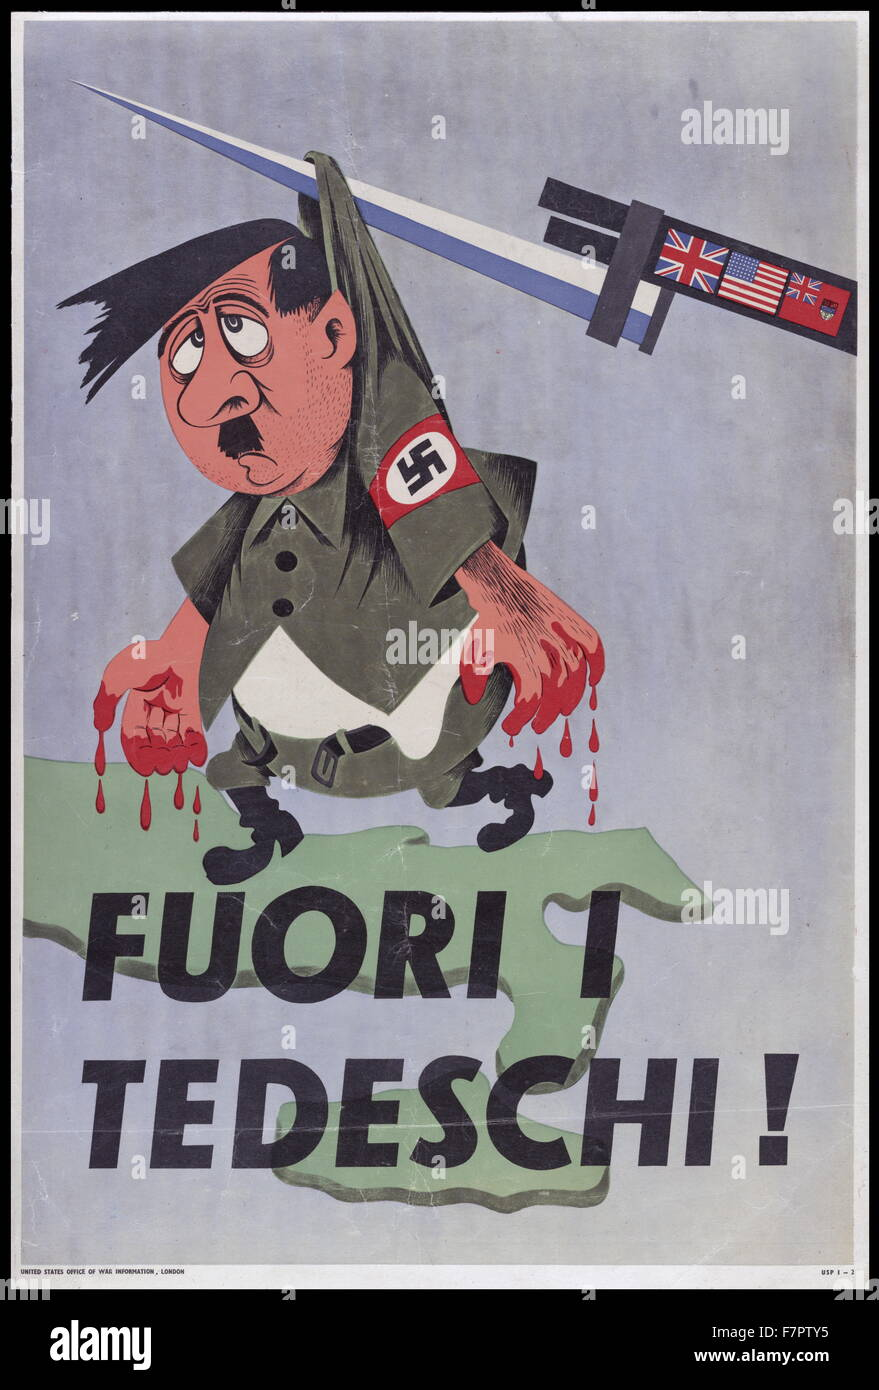 Italian Allied propaganda against the Germans from WWII. Text translates to 'Germans out!'. - Stock Image